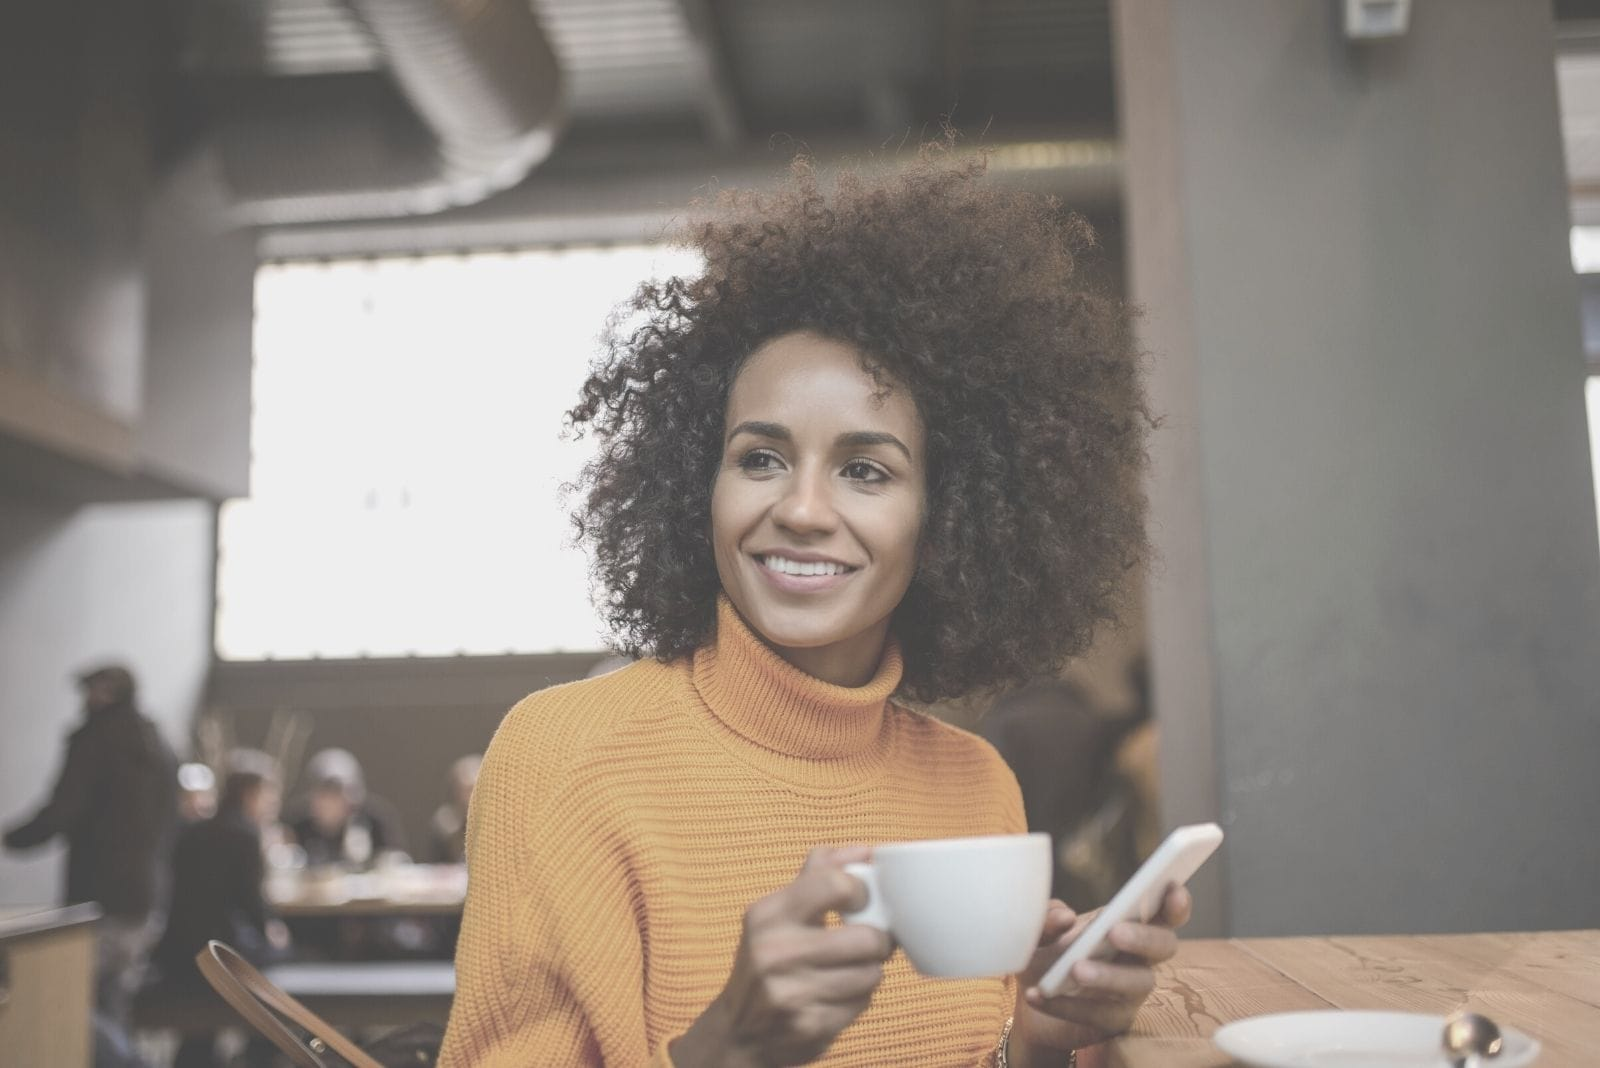 woman drinking coffee inside a cafe and holding a cellphone looking away and smiling